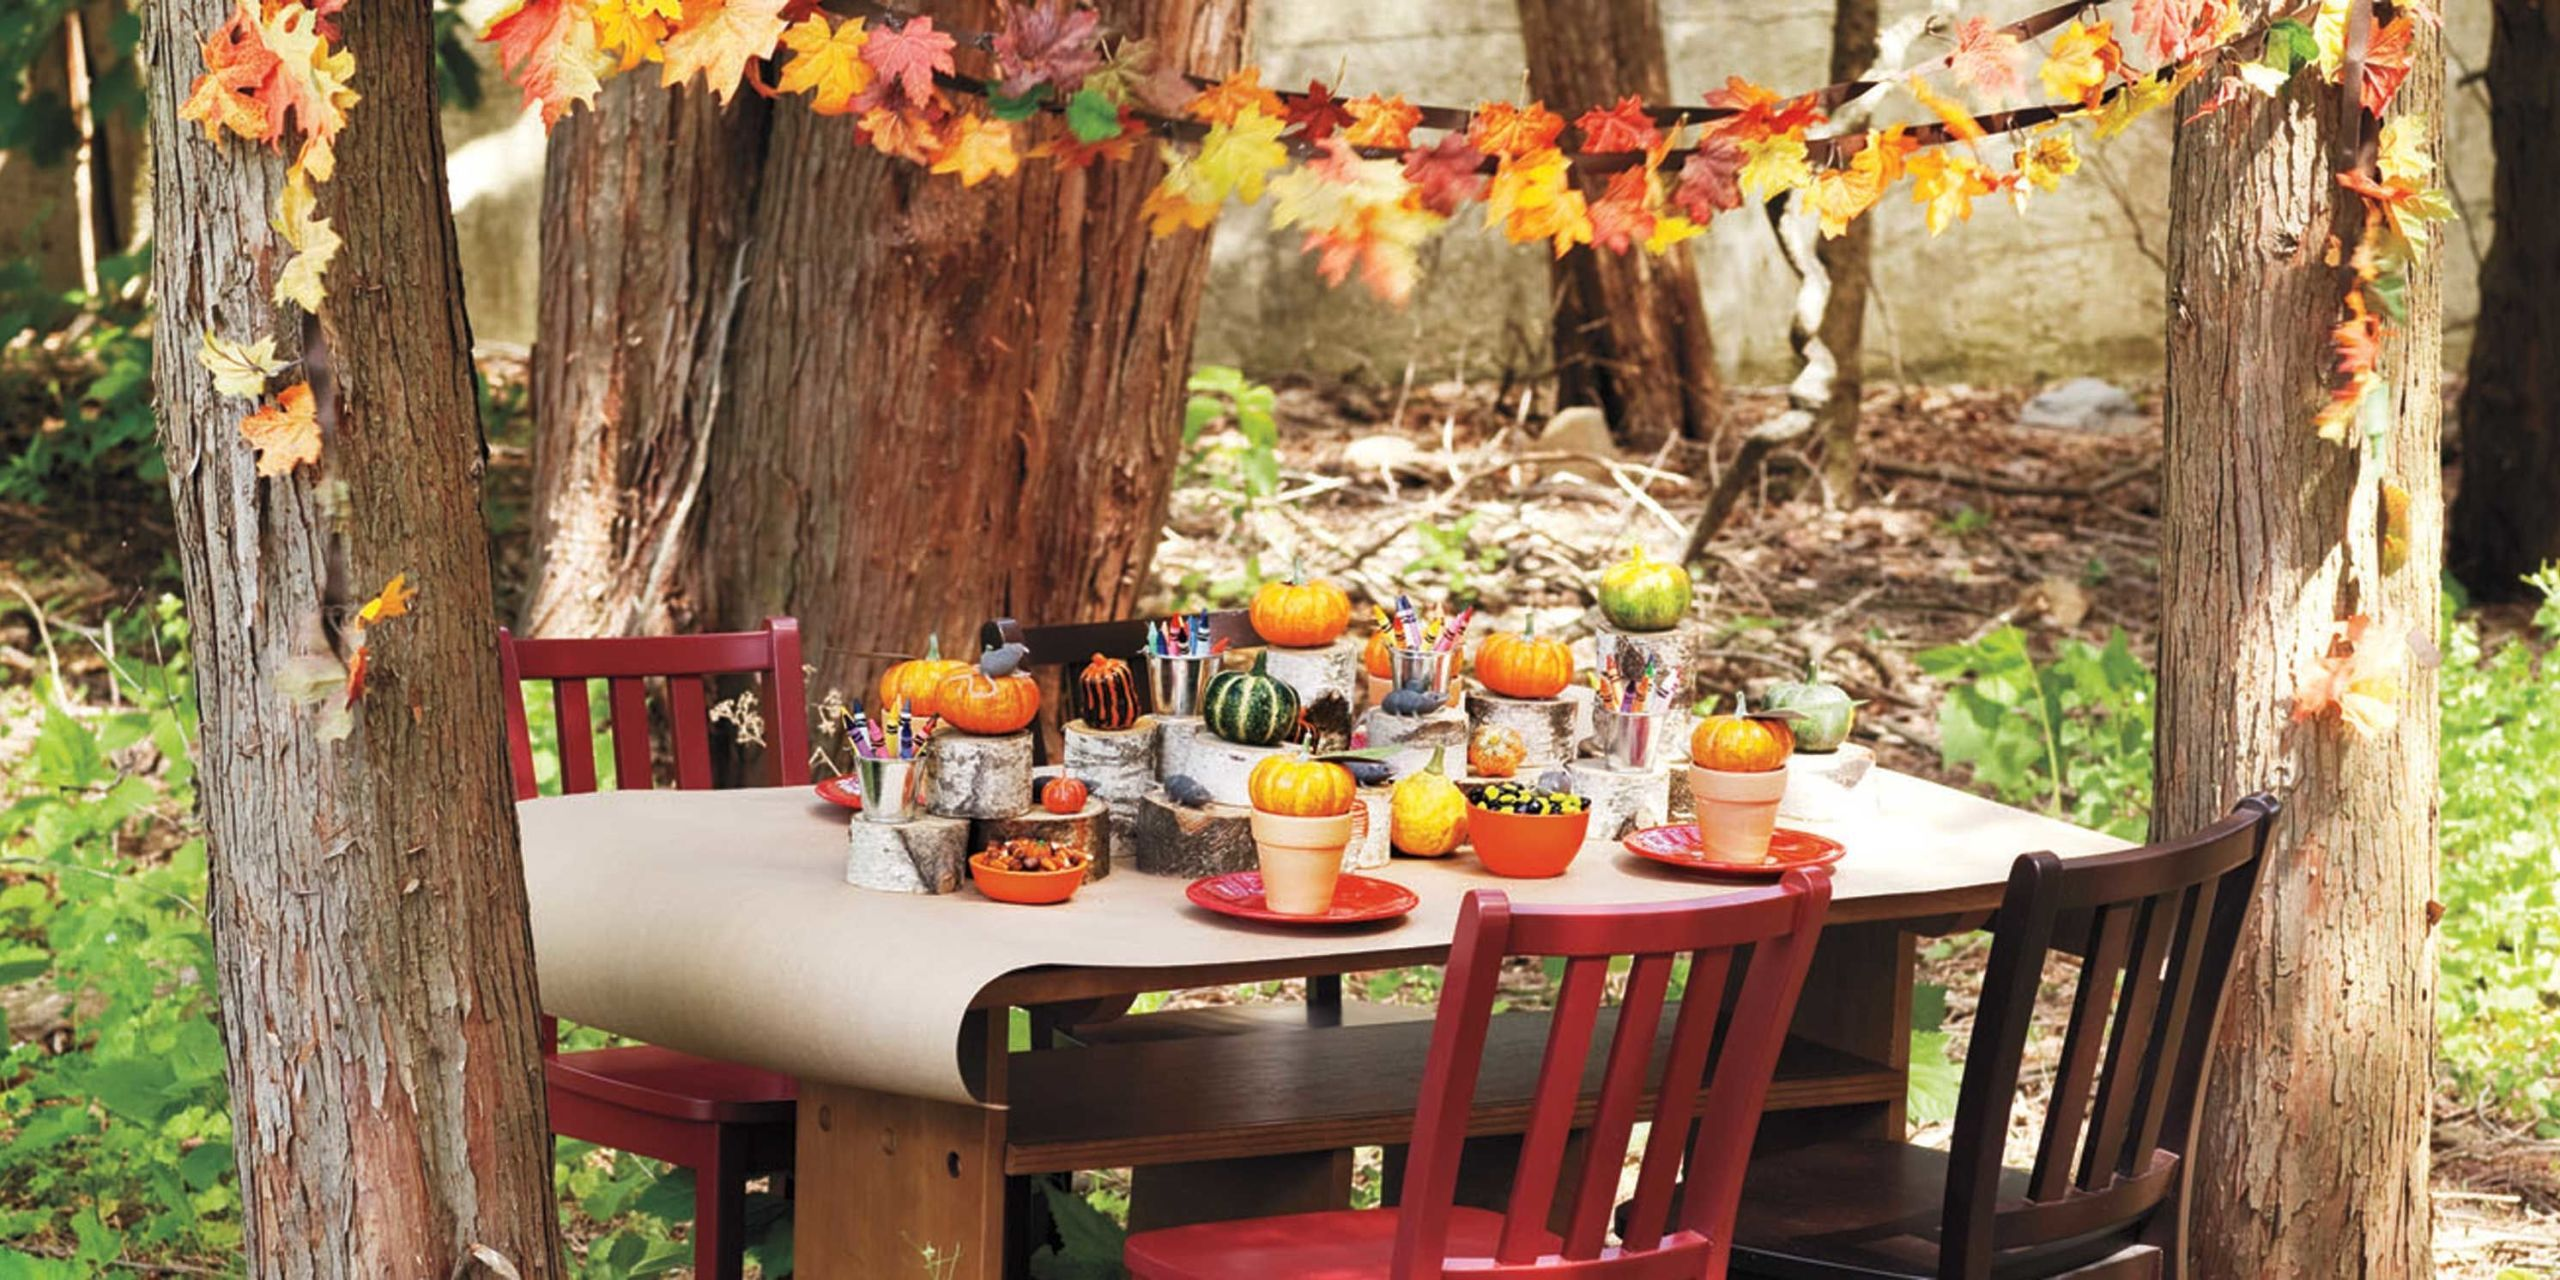 Using Cardboard, Construction Paper, And Things Around The House, You Can  Turn Your Backyard Into A Whimsical Fall Woodland Filled With Secrets And  ...